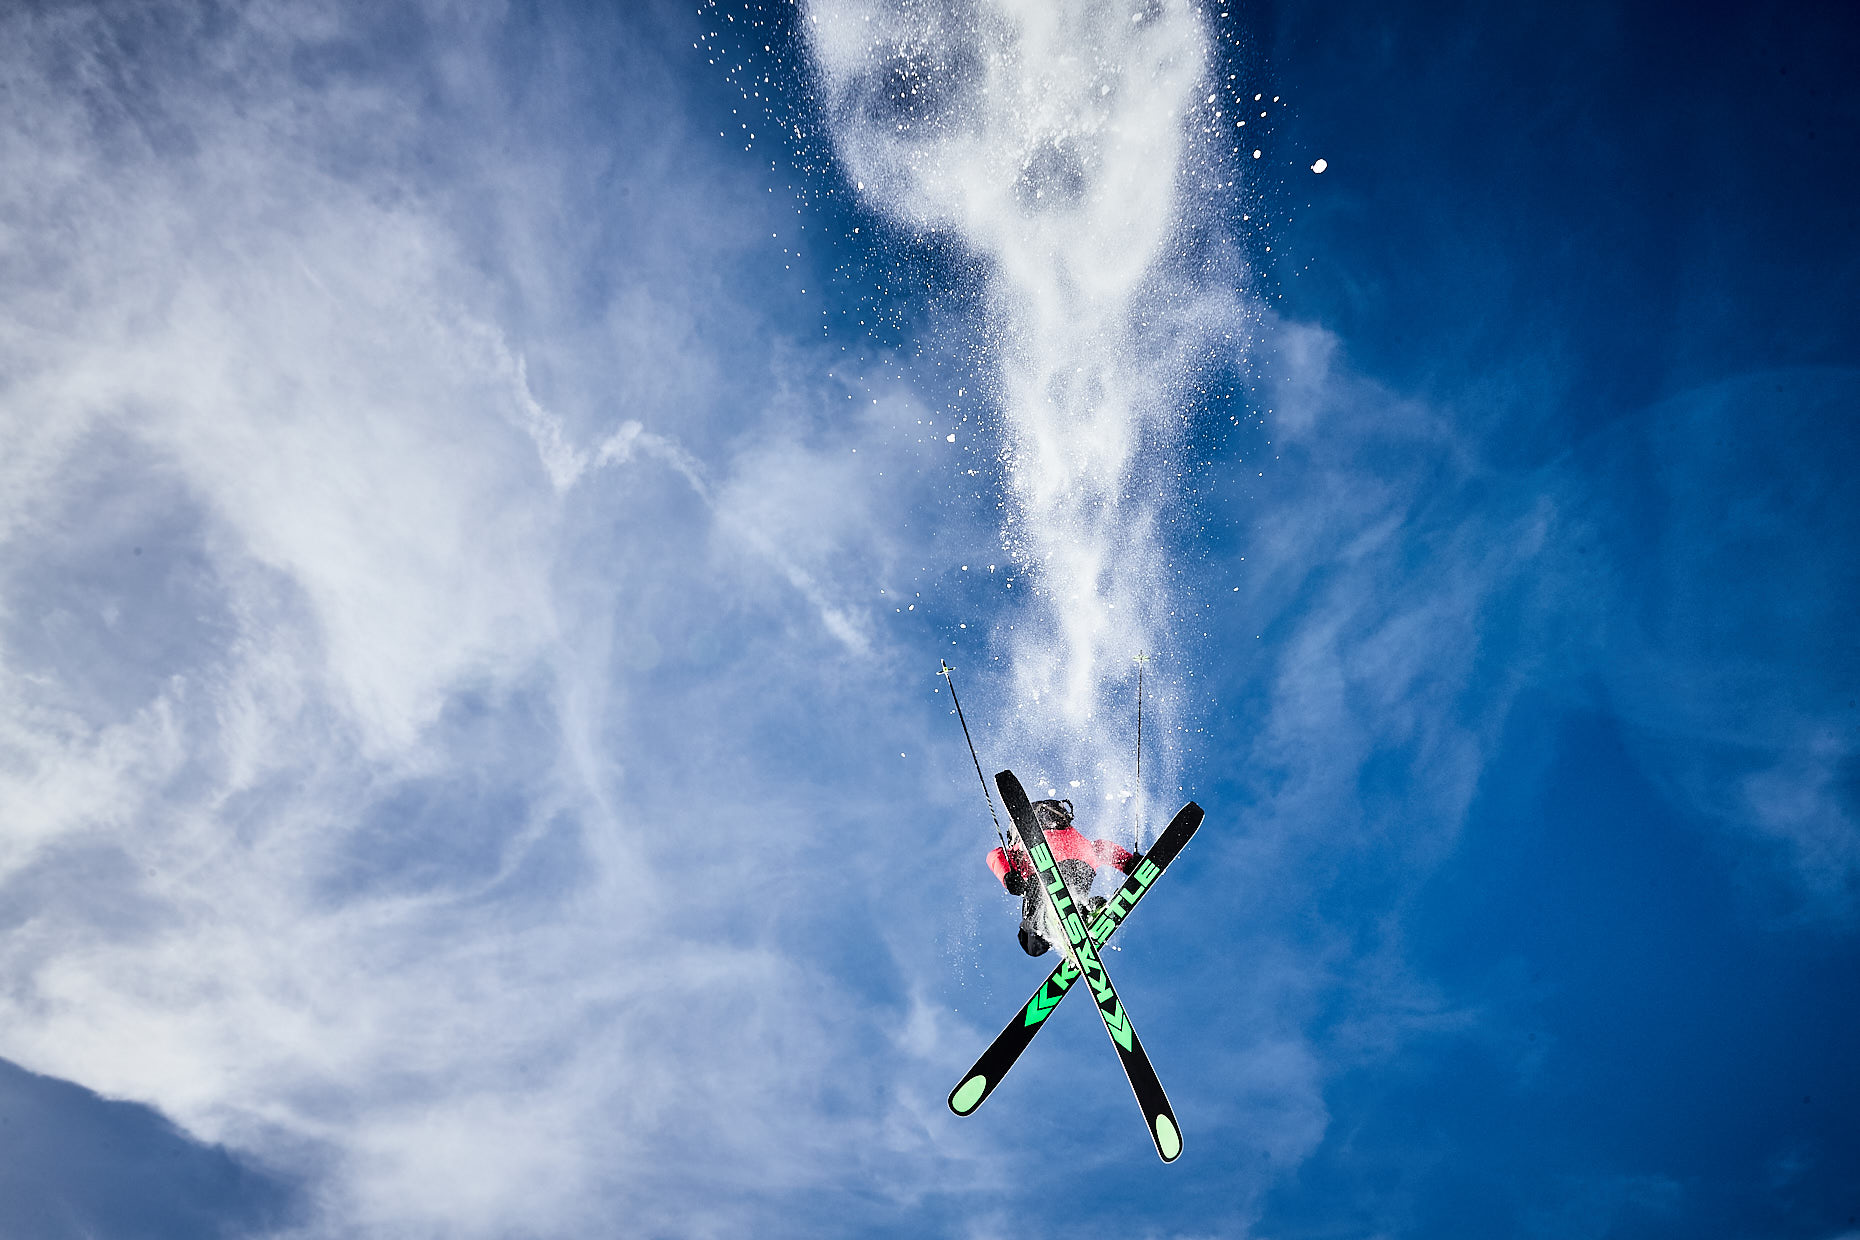 Airtime | Stefan Kuerzi Adventure Photography